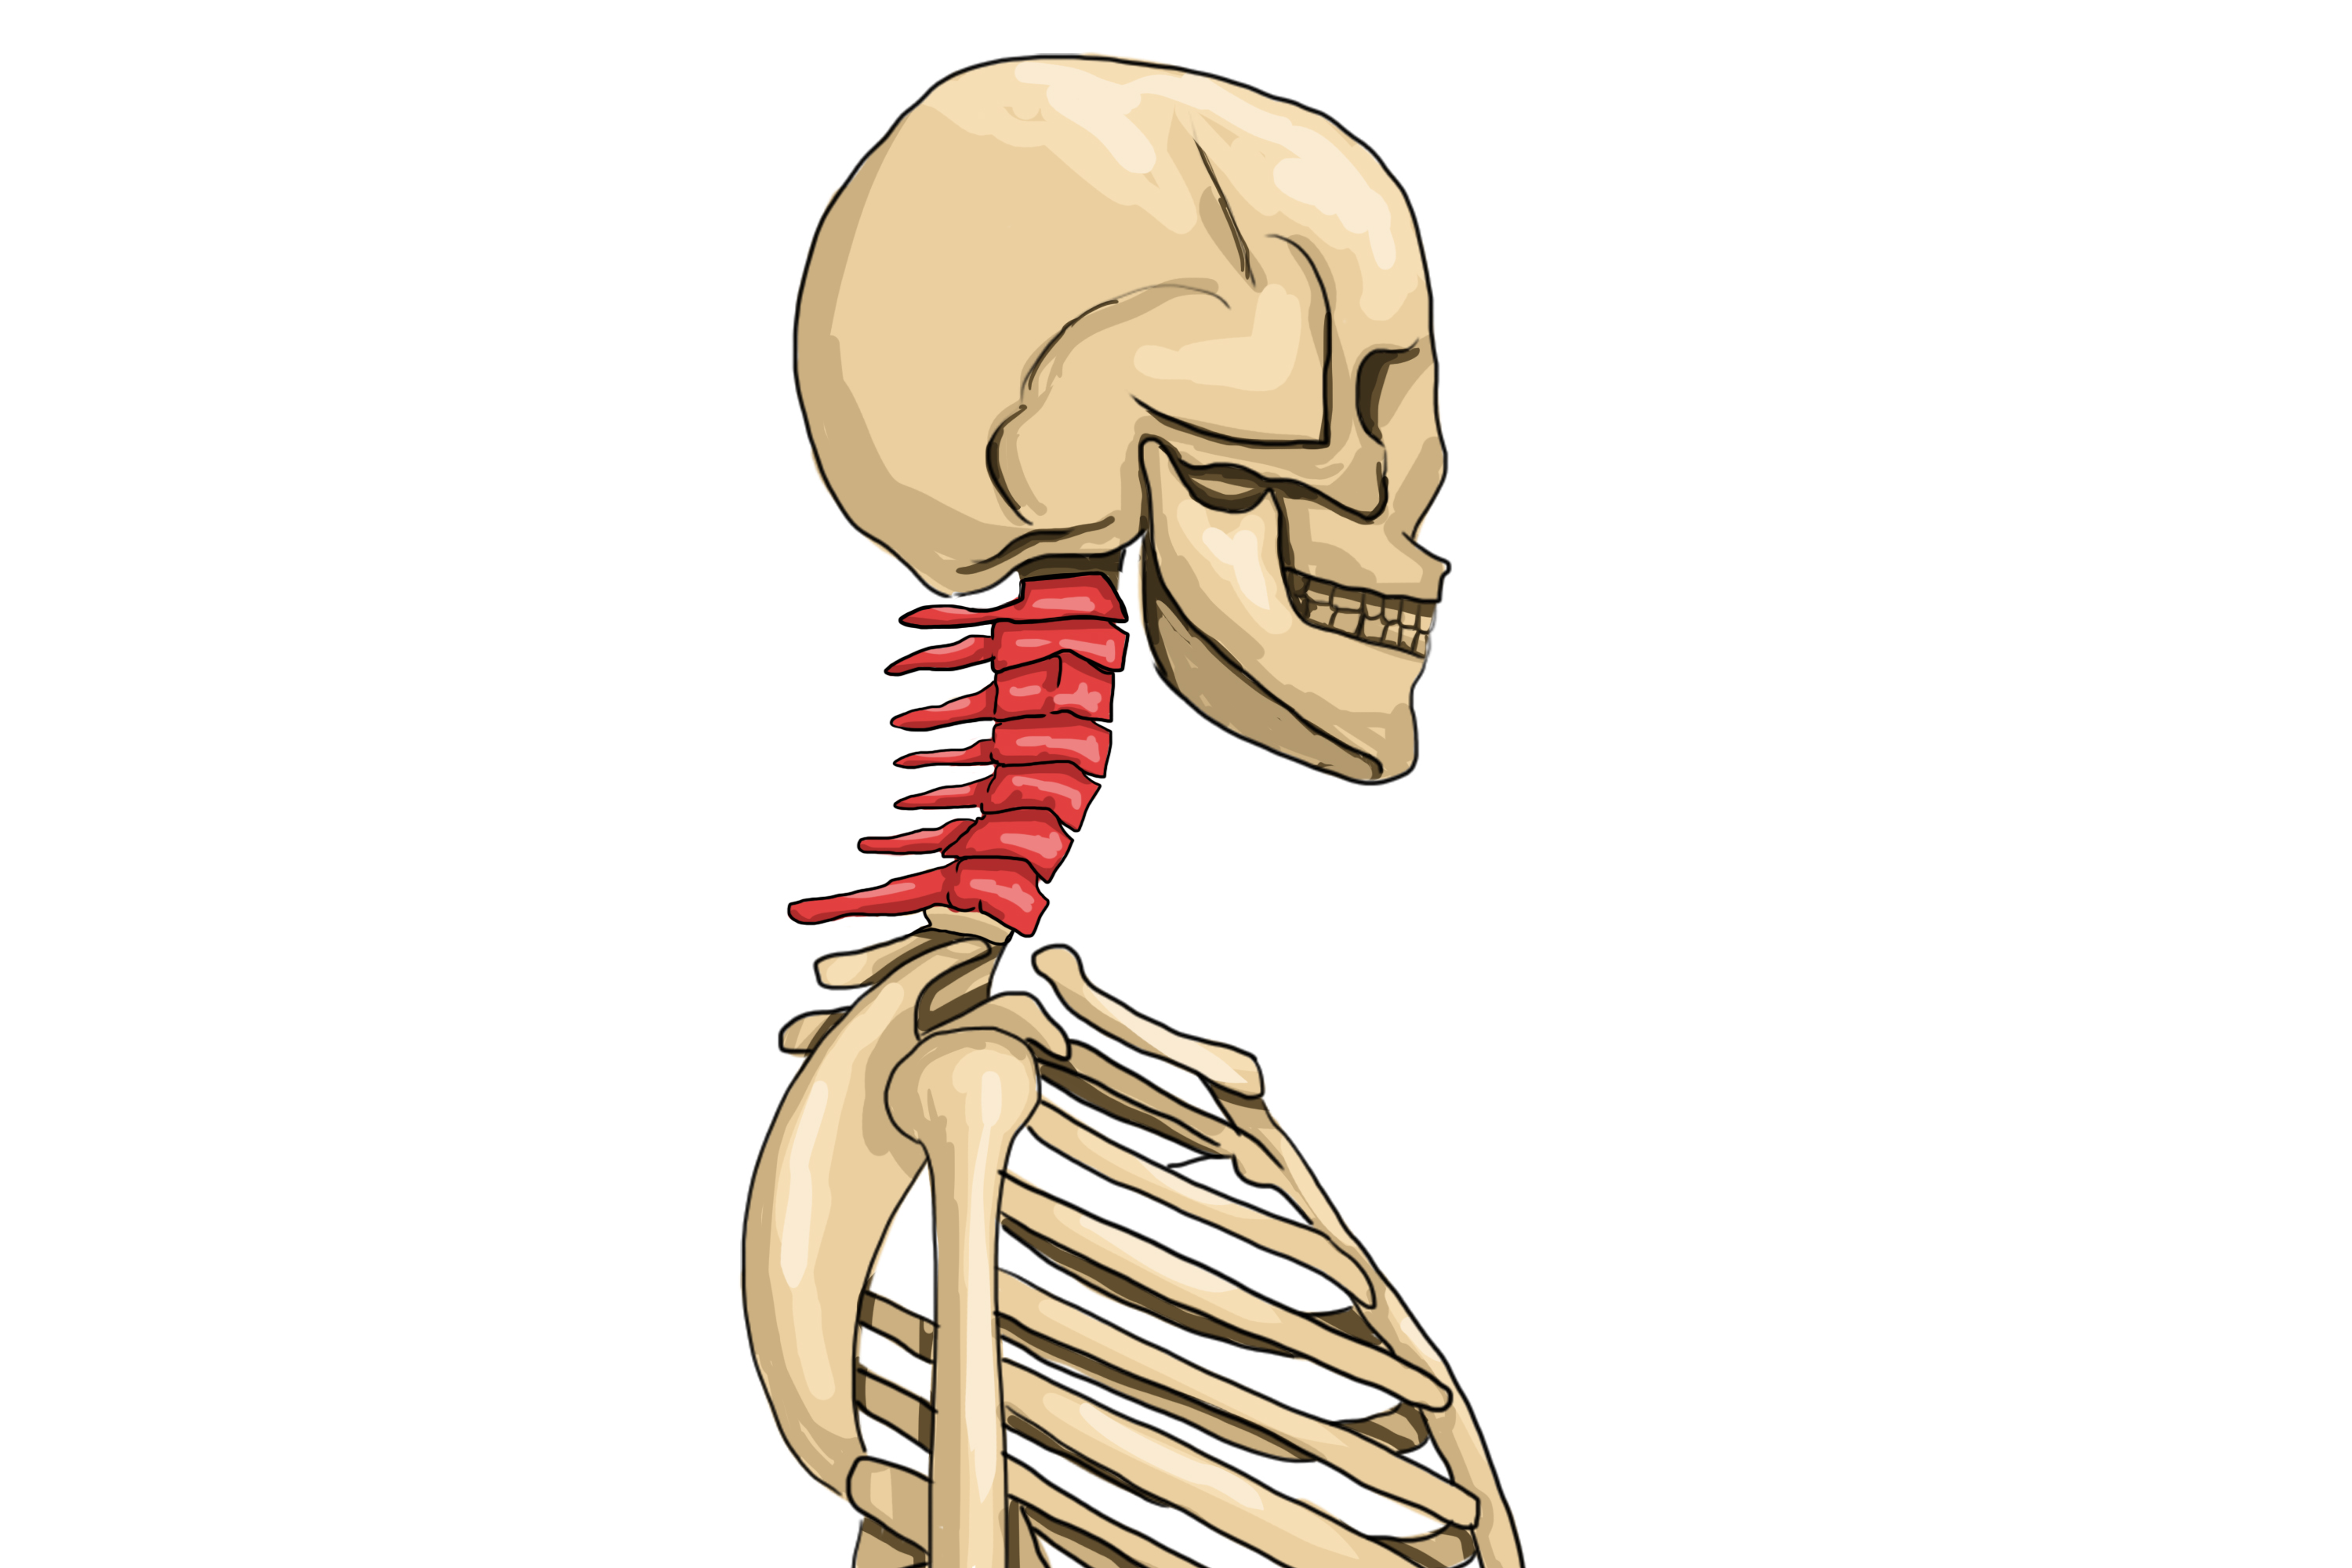 The cervical region is found from the skull 7 vertebrae downwards in the neck